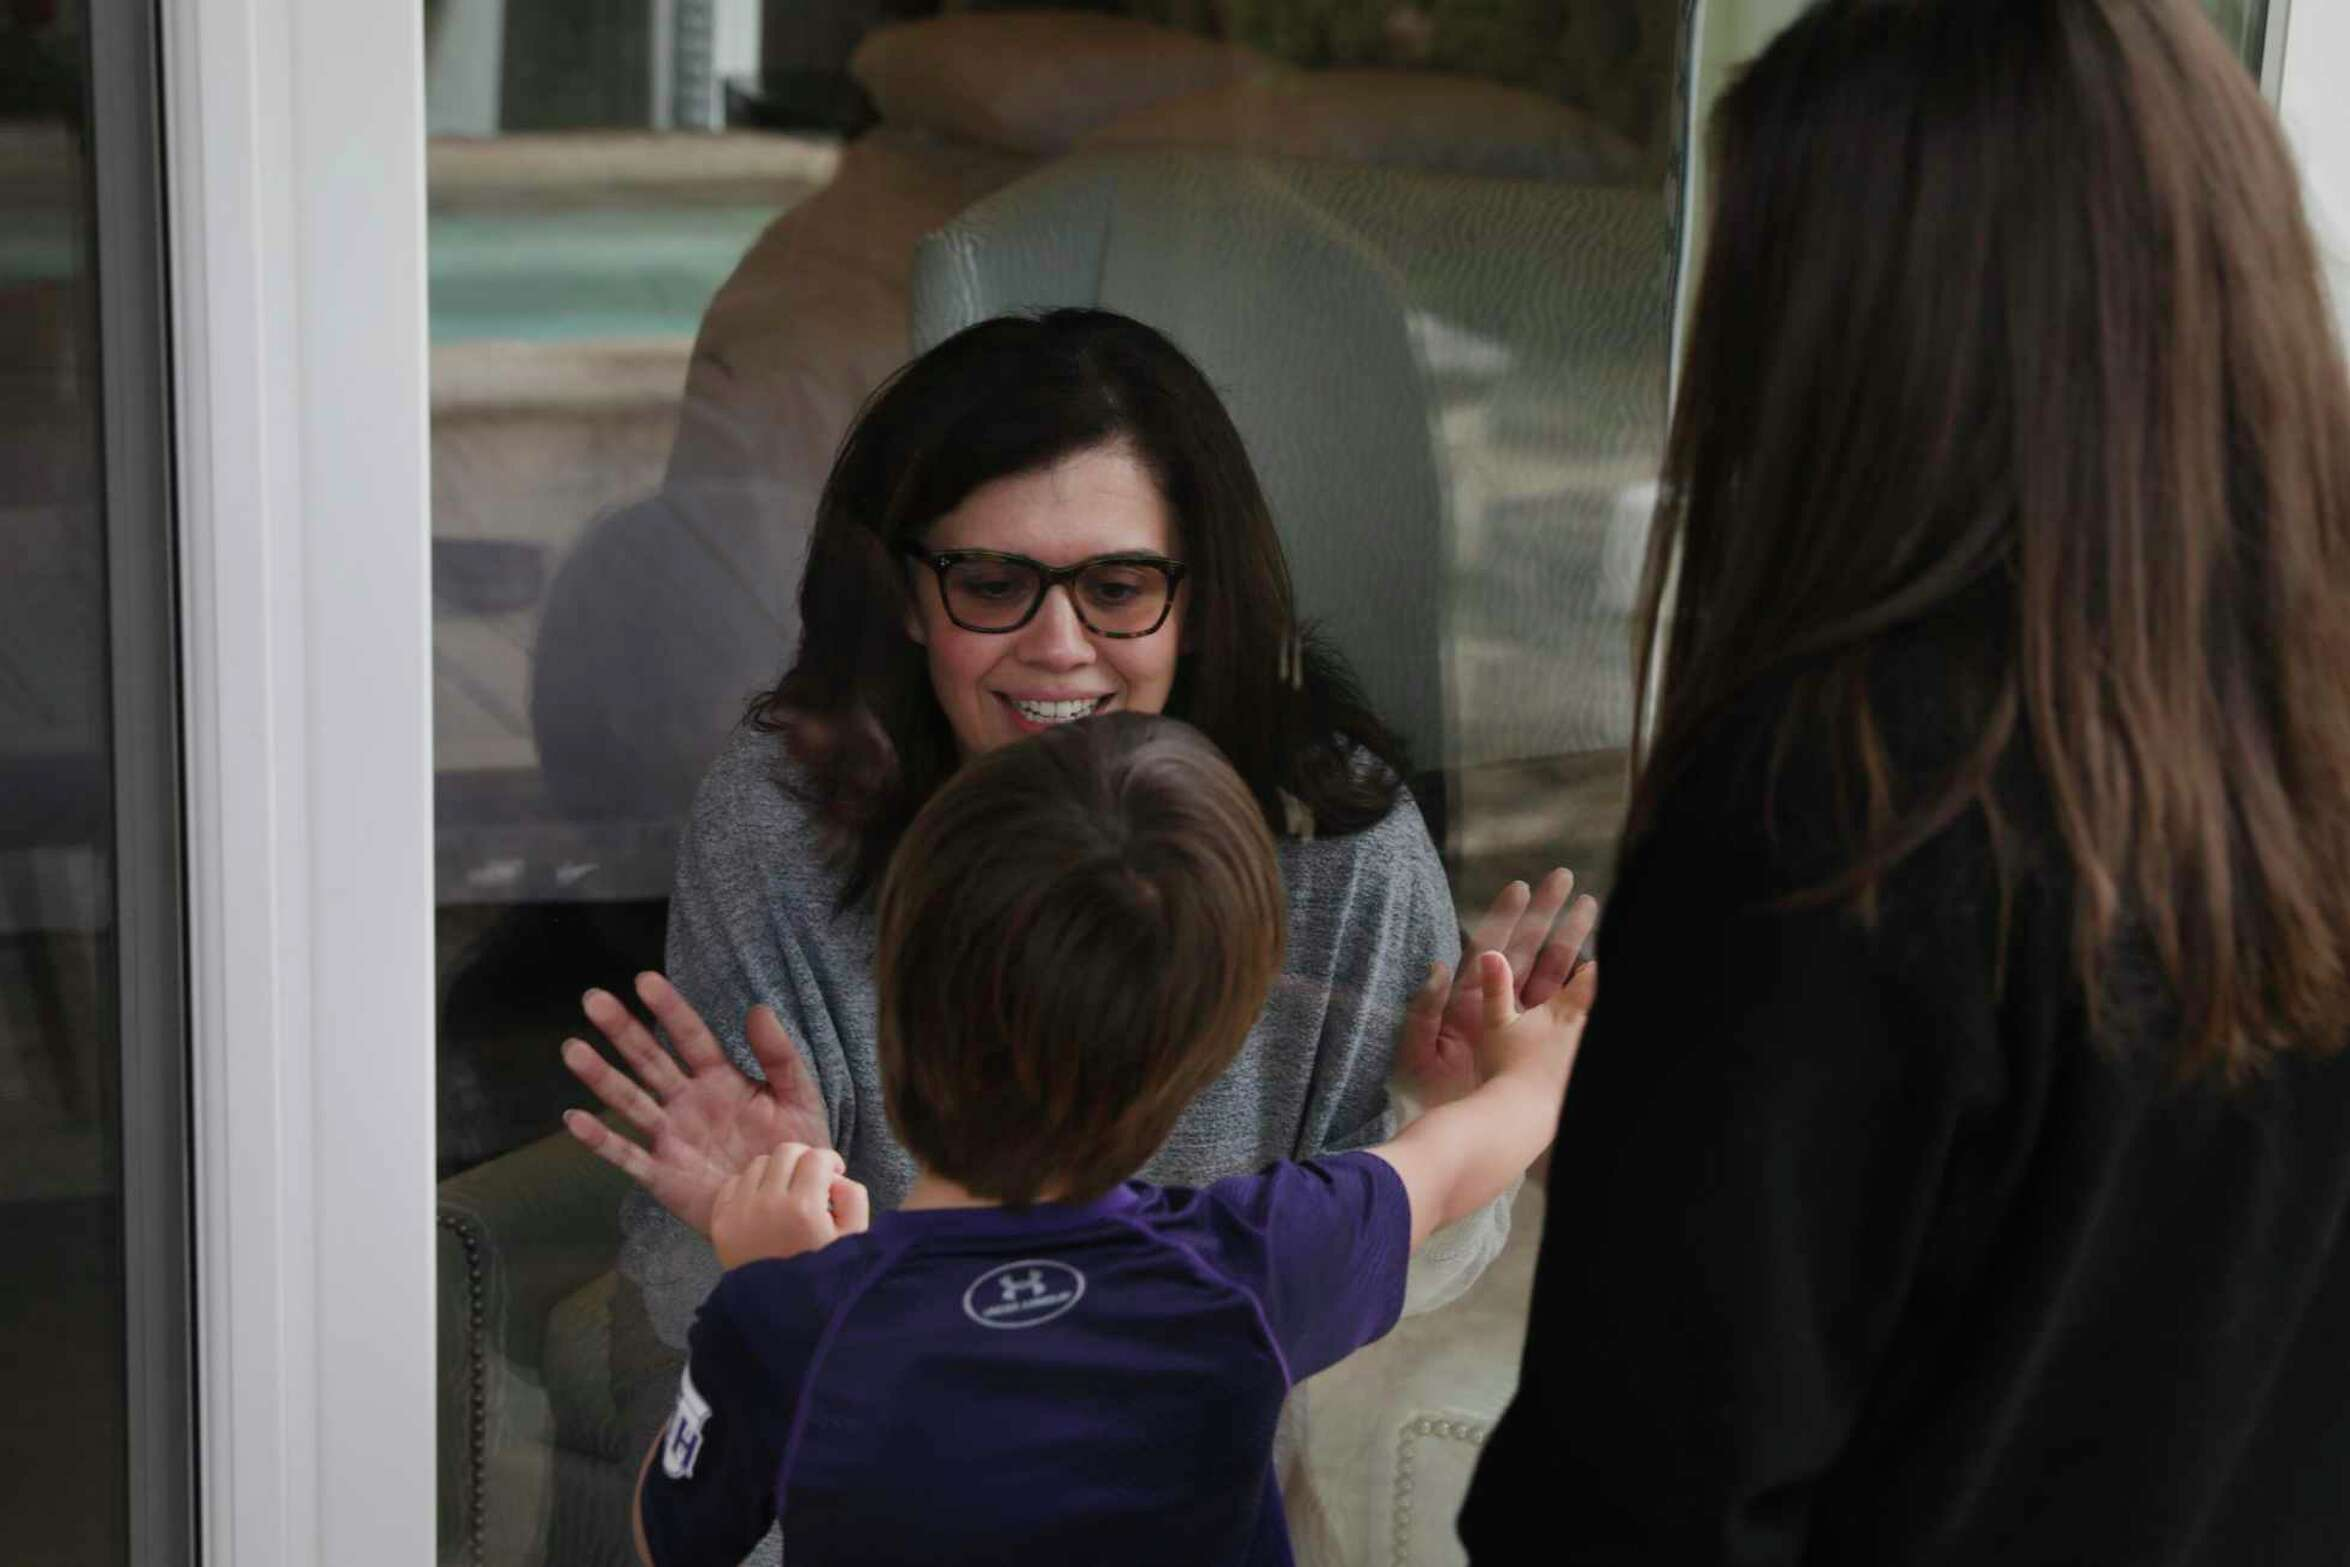 Justice Luz Elena Chapa greets her son Jose Chapa, 5, through a glass door with her daughter Natalia Chapa, right. Chapa, Justice of the 4th Court of Appeals was infected with the new coronavirus on a trip to Utah over Spring Break, on Monday, March 30, 2020.